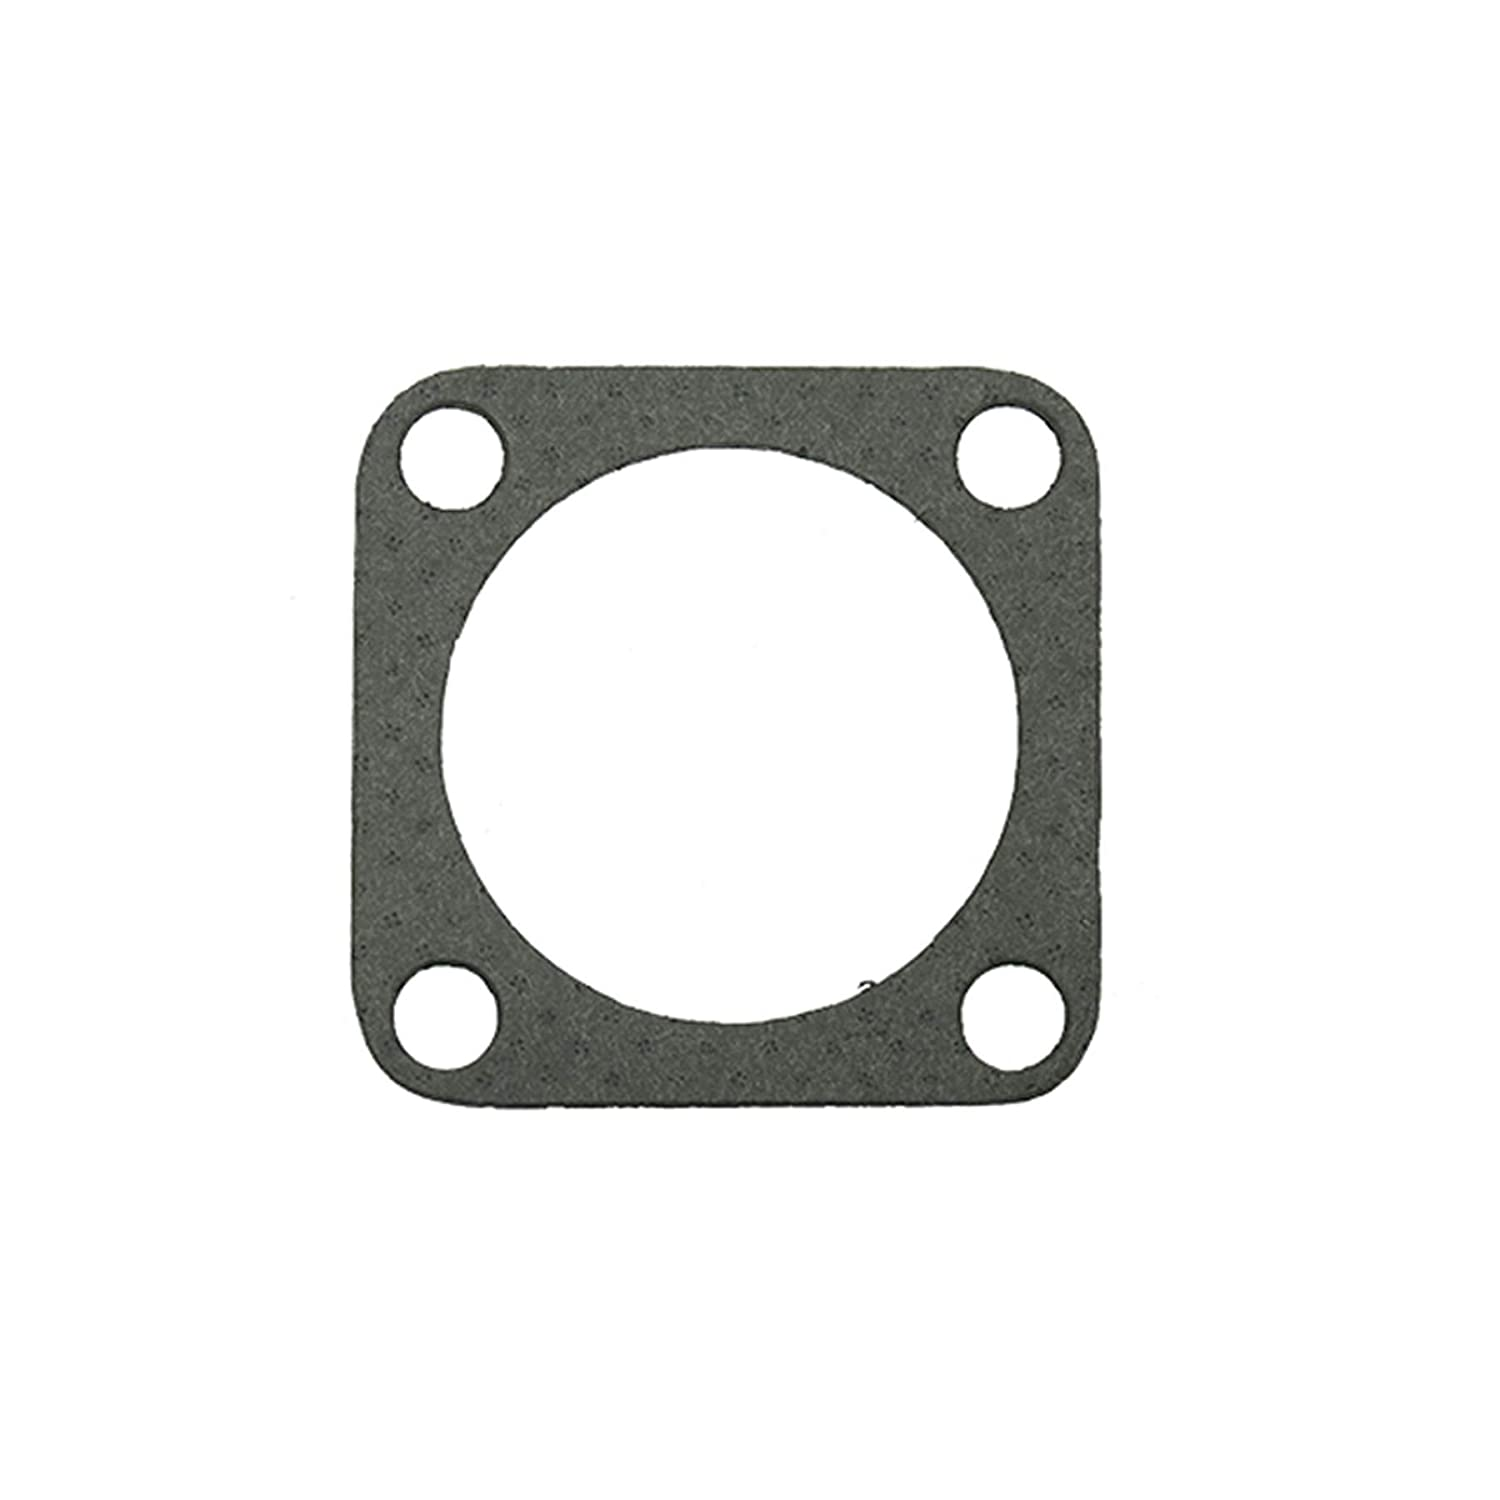 Exhaust Gasket For 2016 Ski-Doo Summit Burton E-TEC 800R Snowmobile